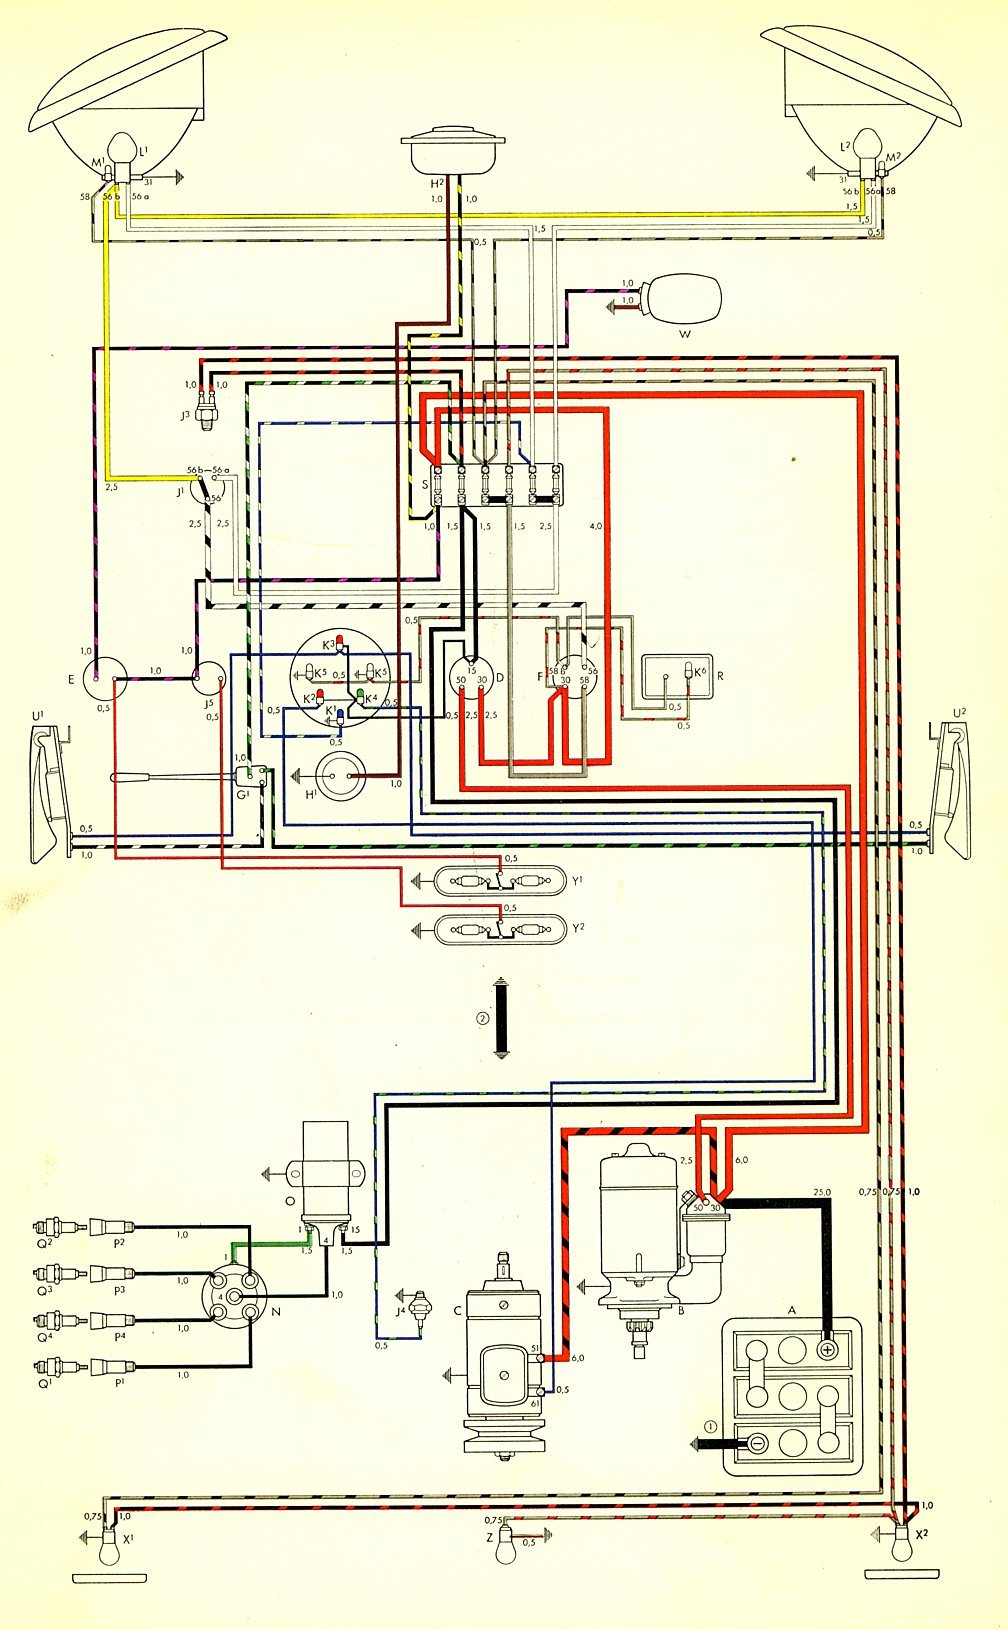 bus_59 bus wiring diagram vw wiring harness diagram \u2022 wiring diagrams j 1971 vw bus wiring diagram at mr168.co